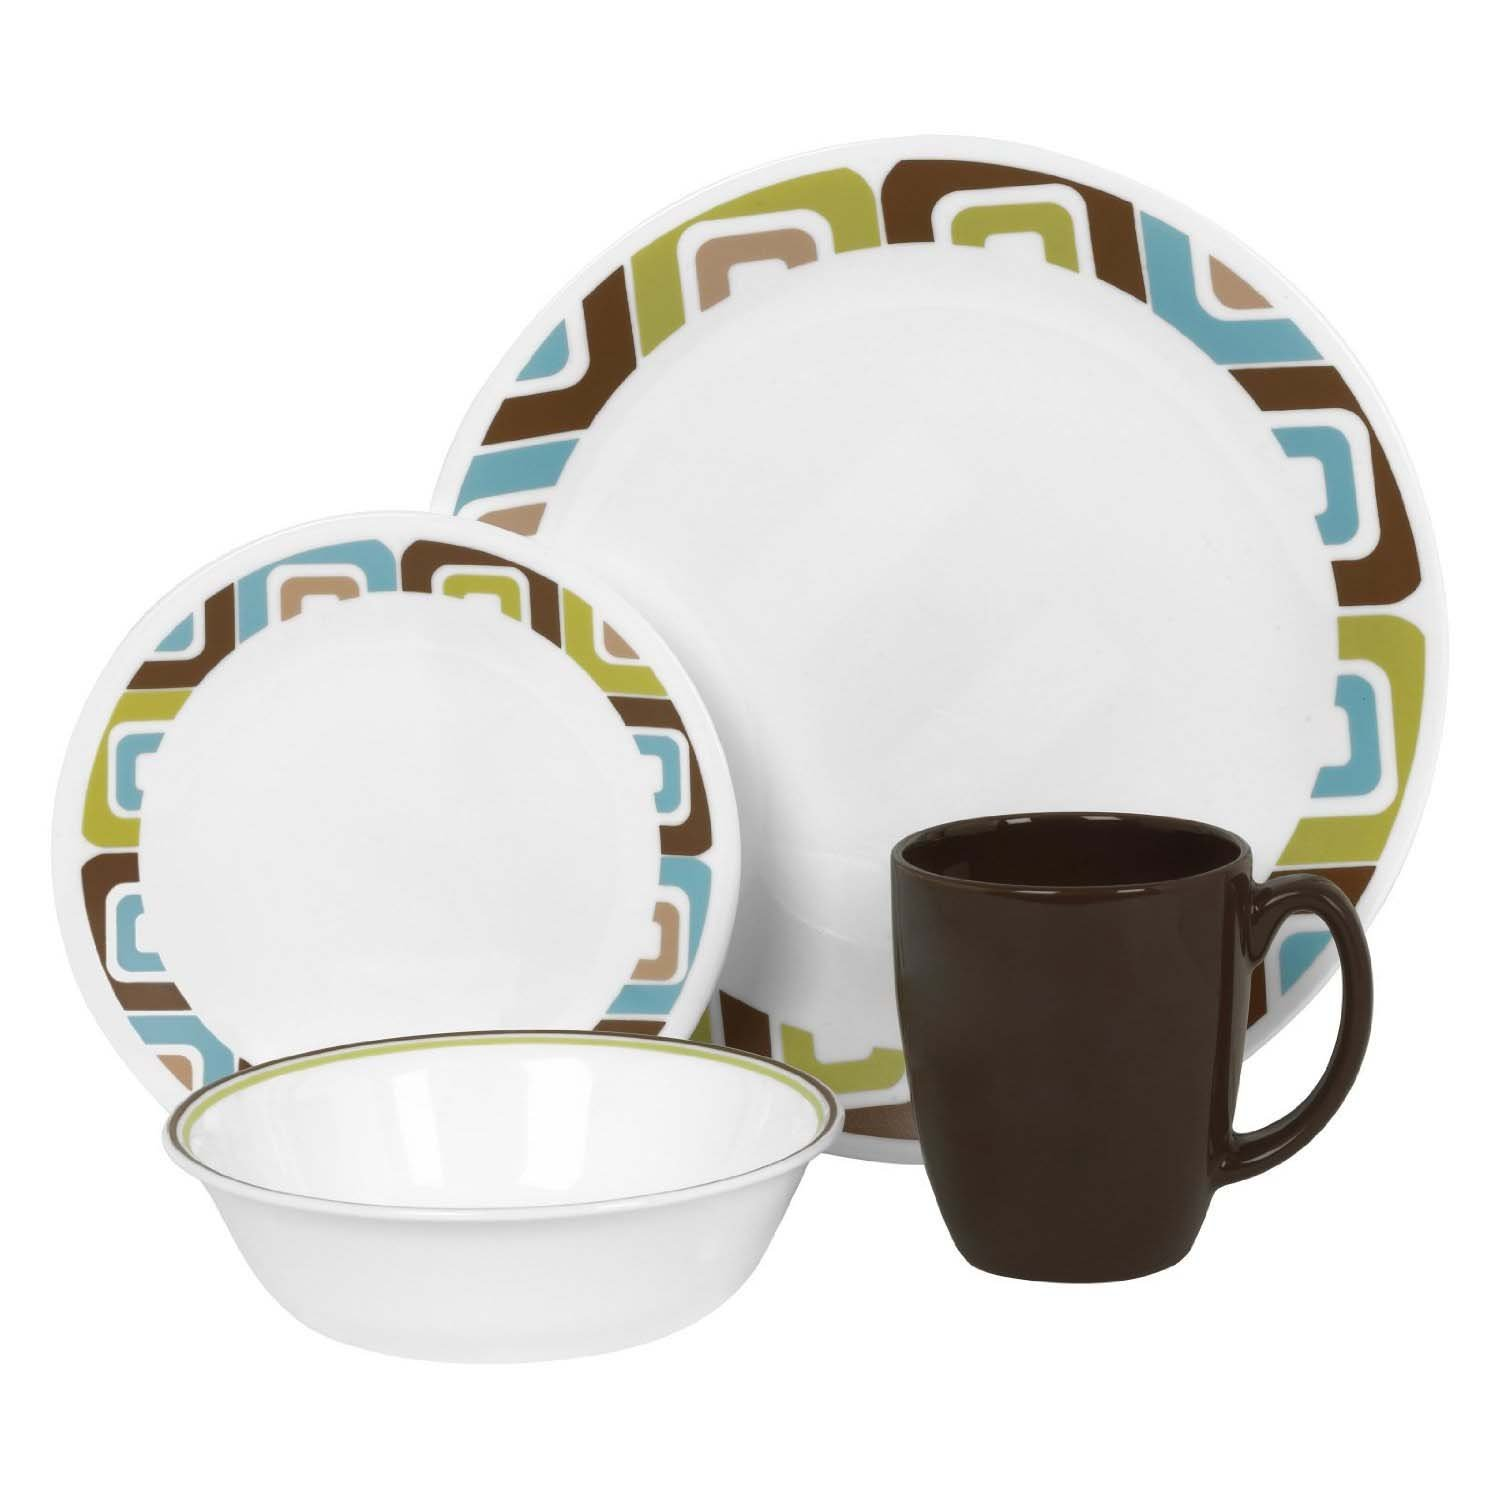 Corelle 16-Piece Vitrelle Glass Squared Chip and Break Resistant Dinner Set Service for 4 Brown/Blue//Green Amazon.co.uk Kitchen u0026 Home  sc 1 st  Amazon UK & Corelle 16-Piece Vitrelle Glass Squared Chip and Break Resistant ...